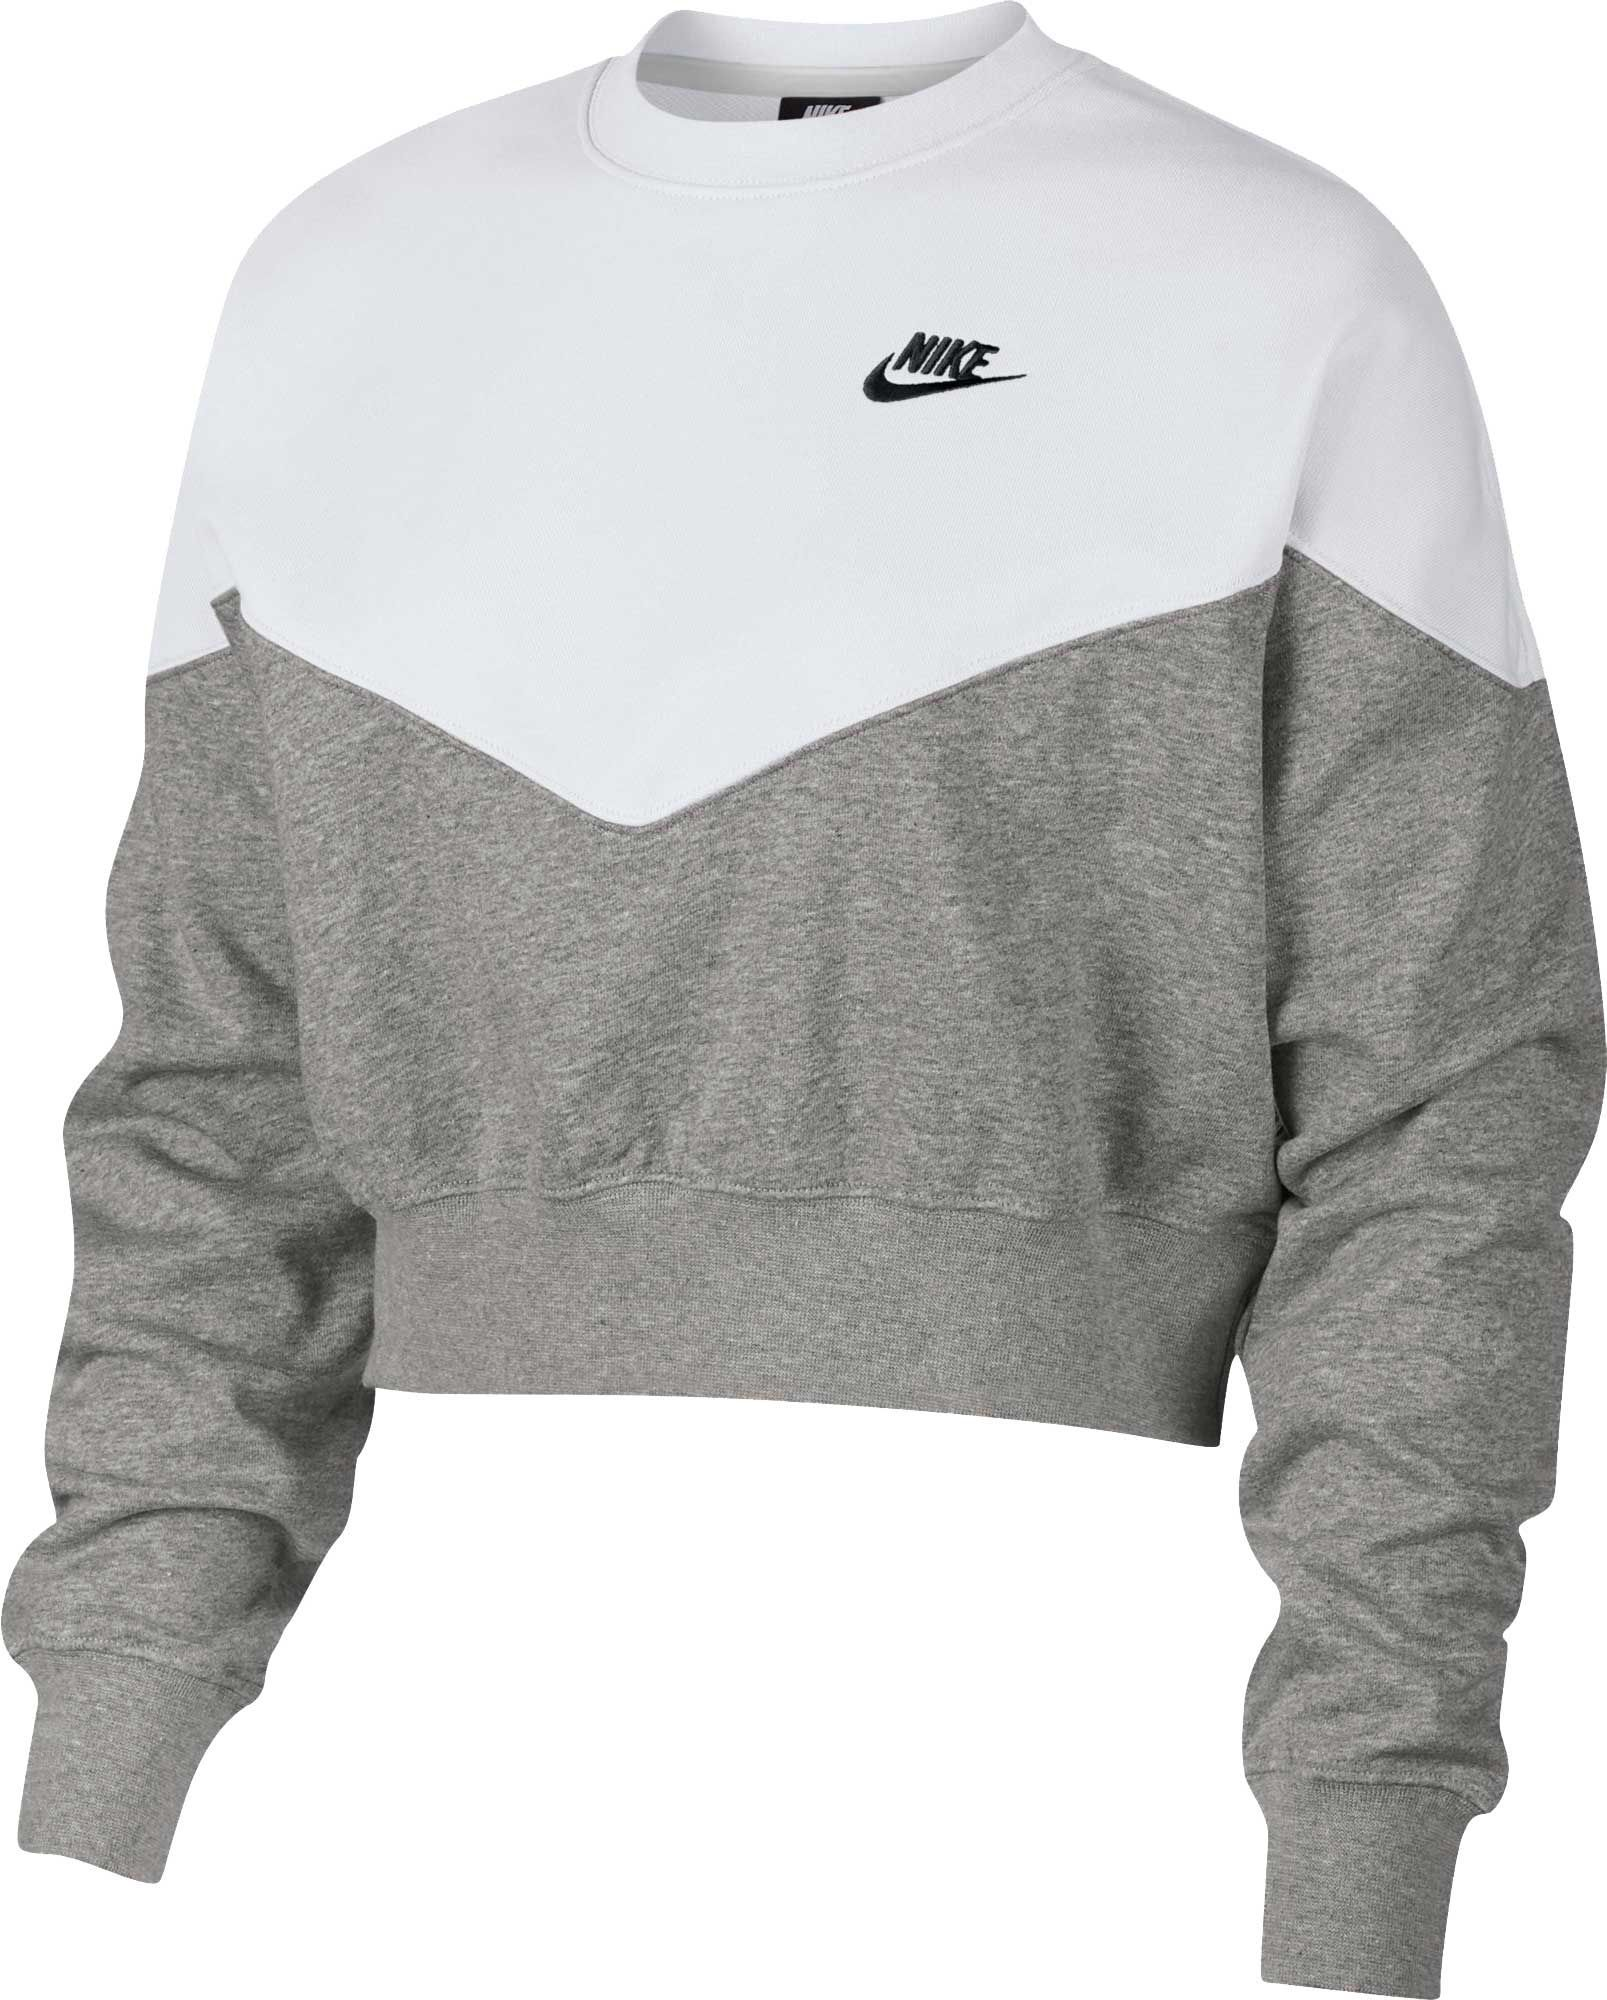 Nike Nike Women's Sportswear Heritage Track Jacket, Size: Small, Cool Grey from DICKS Sporting Goods | ShapeShop